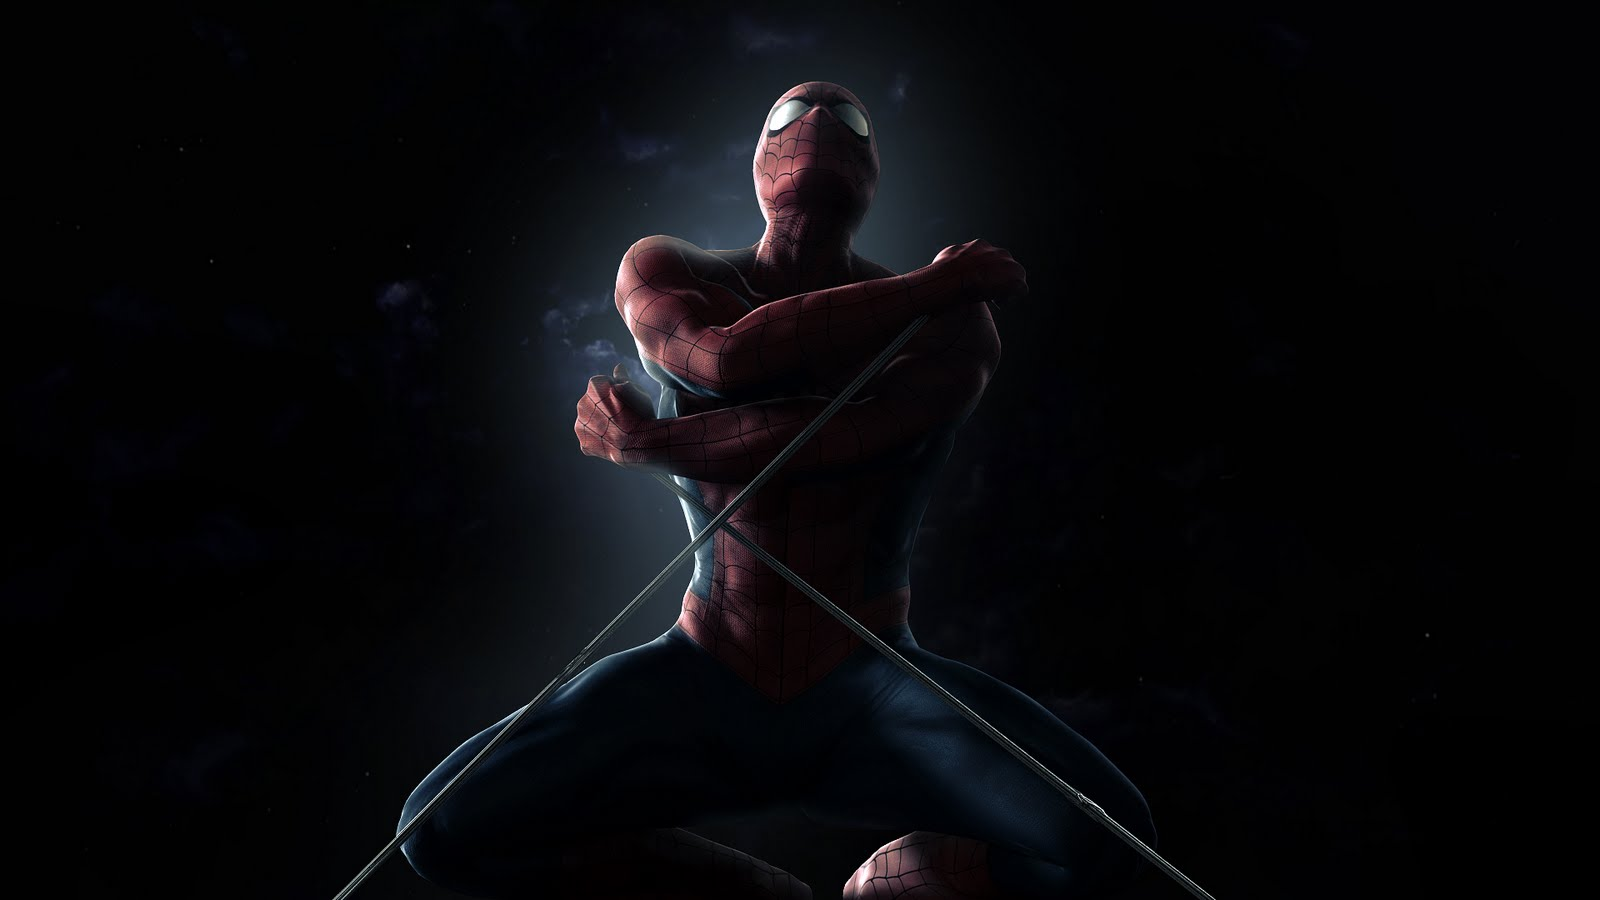 Spiderman HD Wallpapers Logo Download Wallpapers in HD for your 1600x900